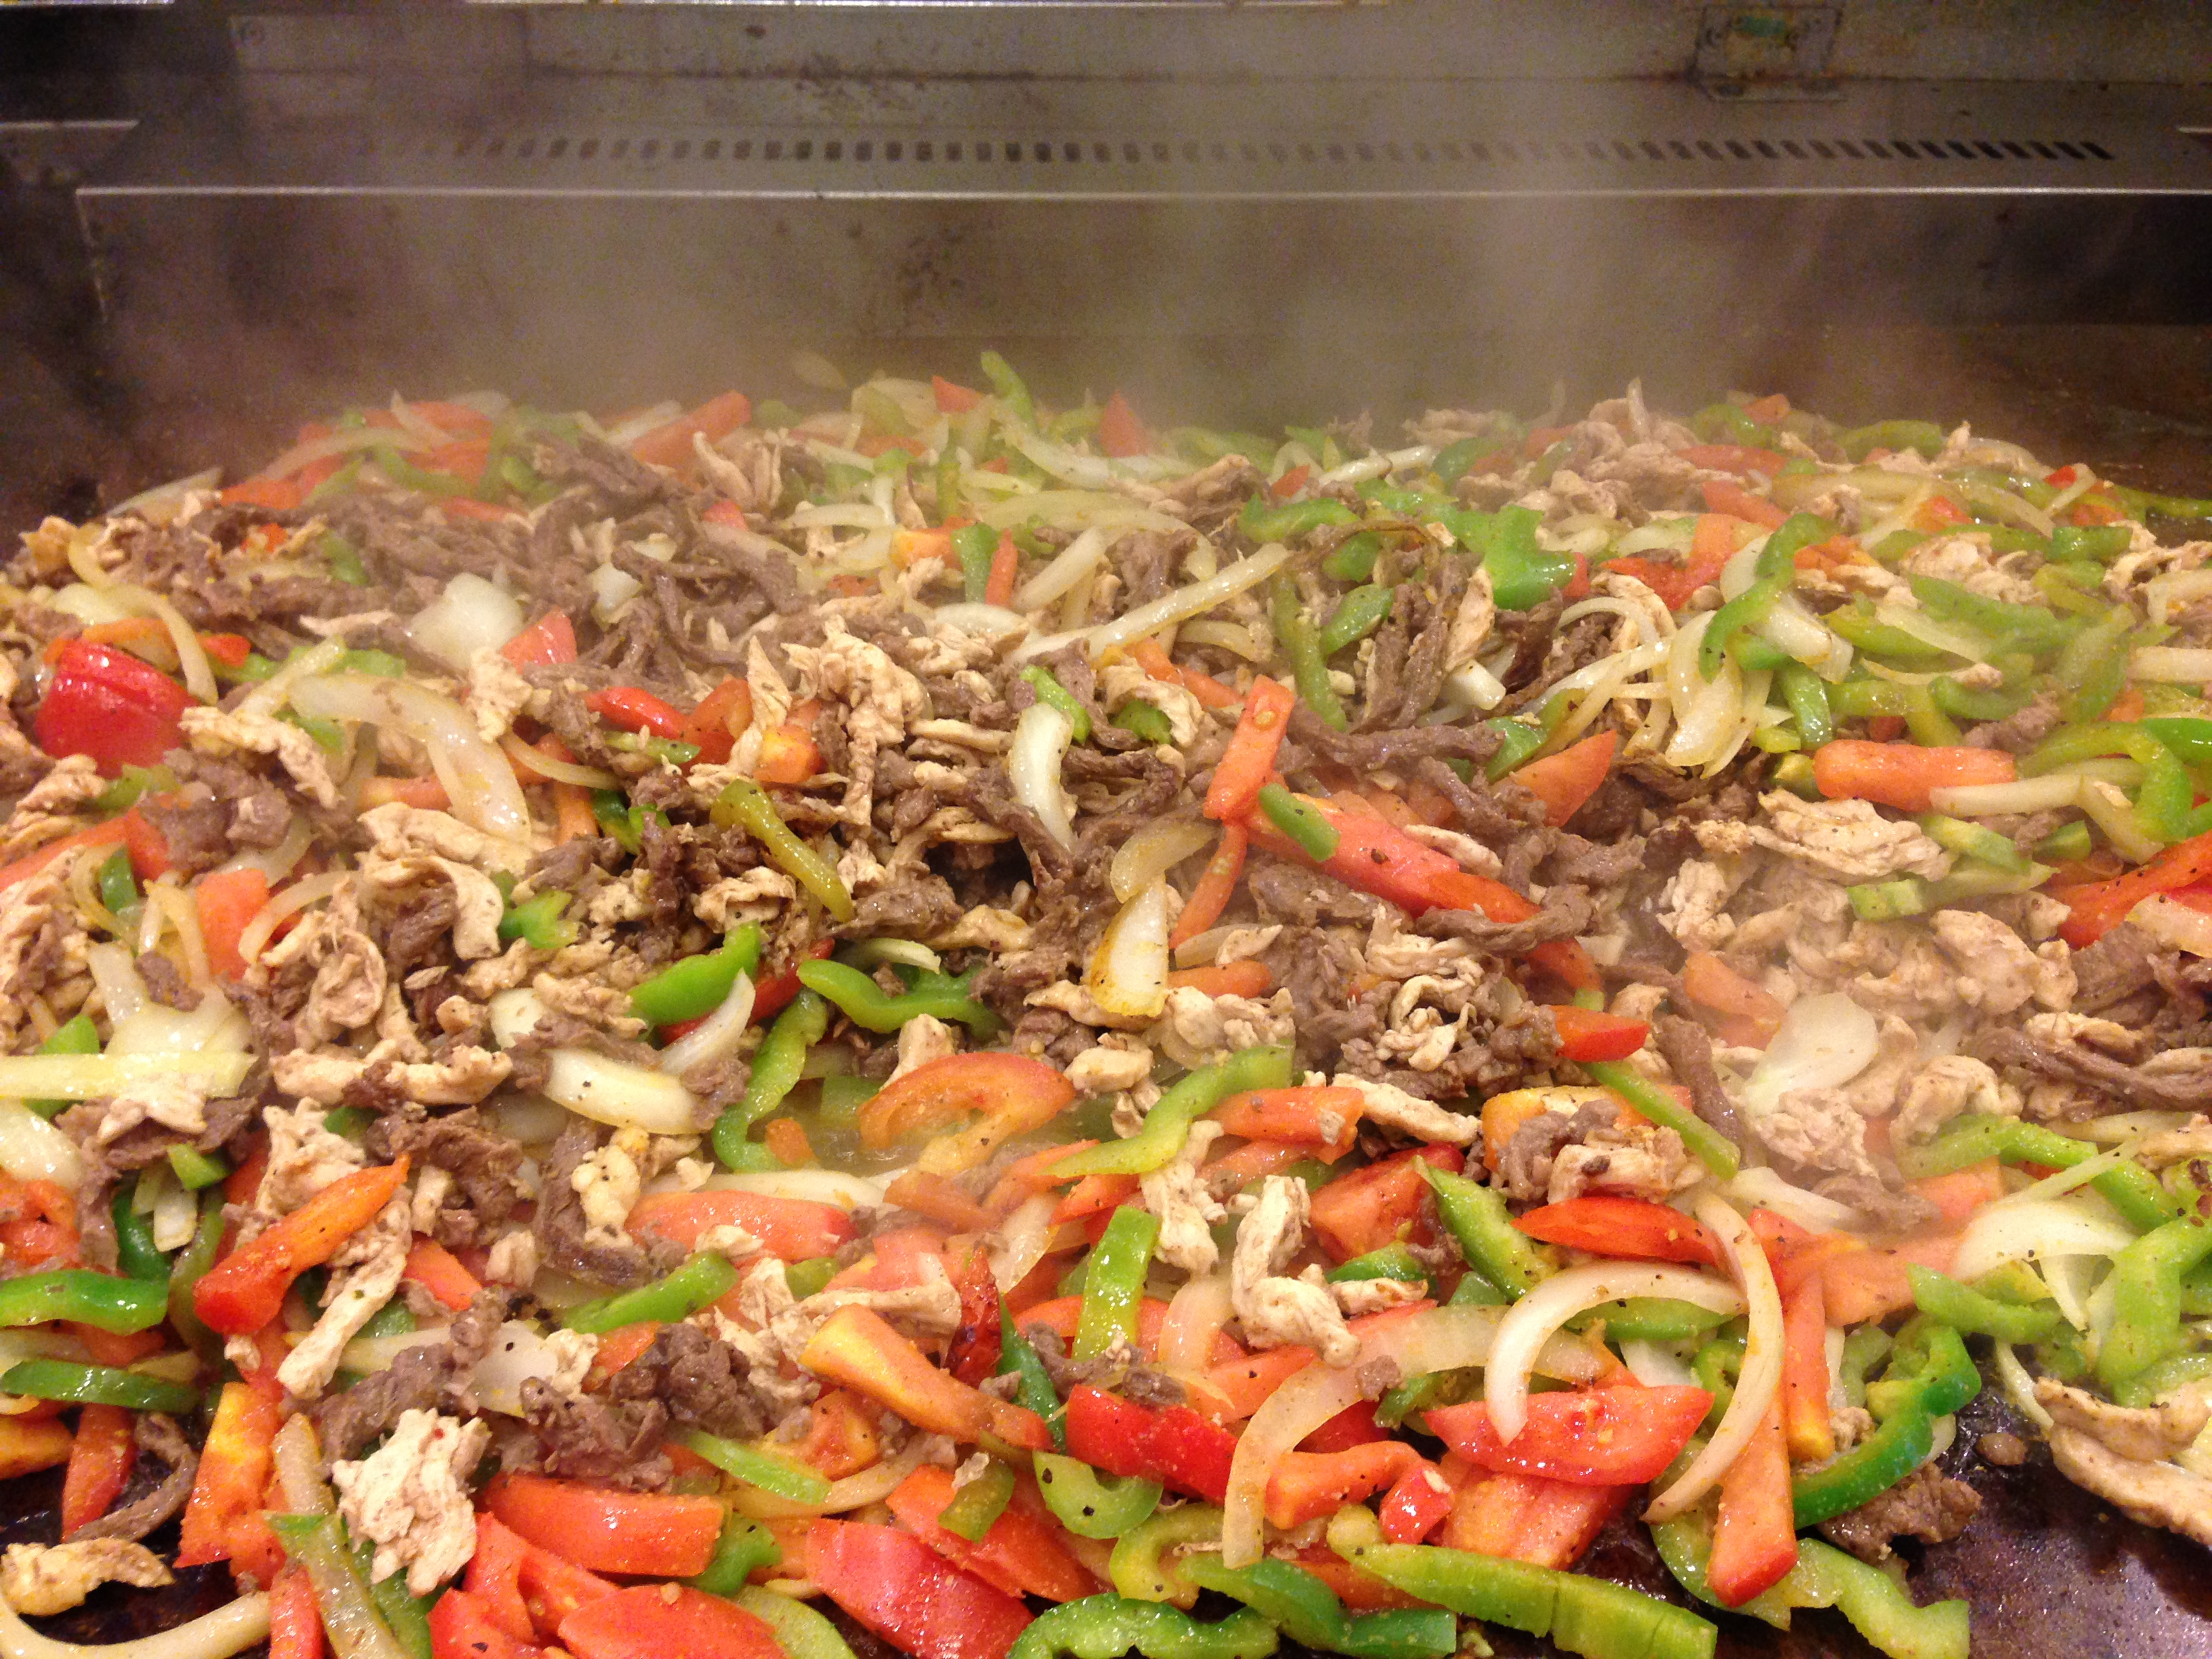 Chicken or Steak Fajitas Image